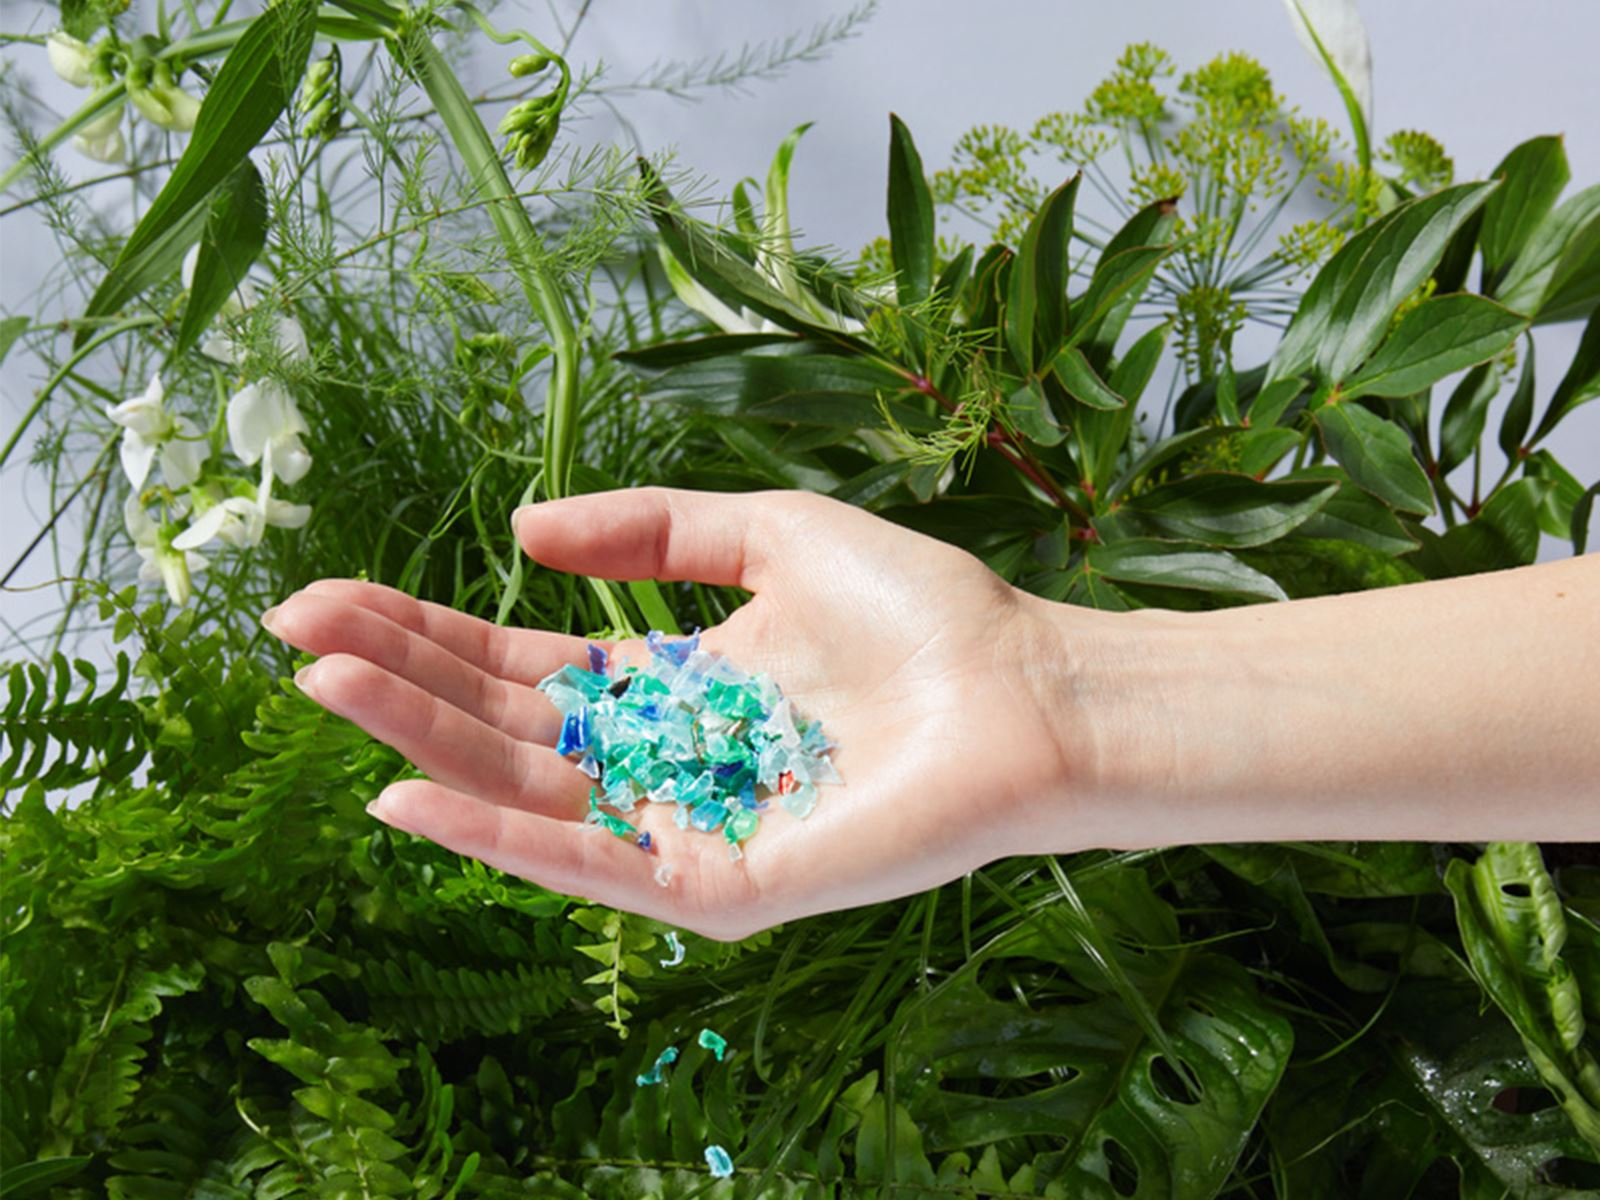 Responsible Sourcing, Production and Waste Reduction